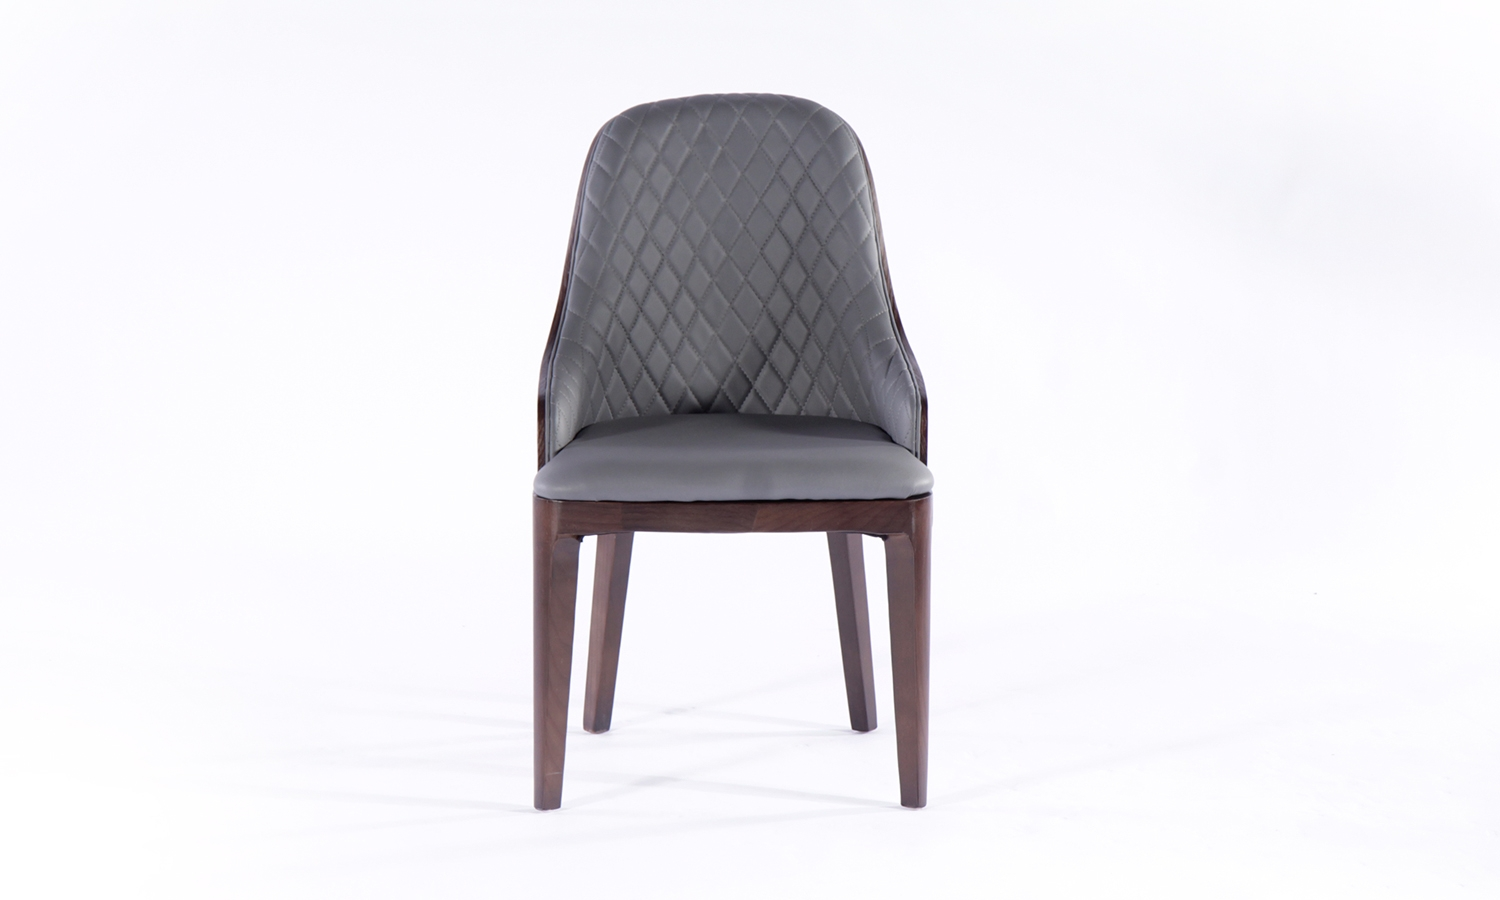 Urban Deco Madrid Grey Faux Leather Dining Chair (Pair)